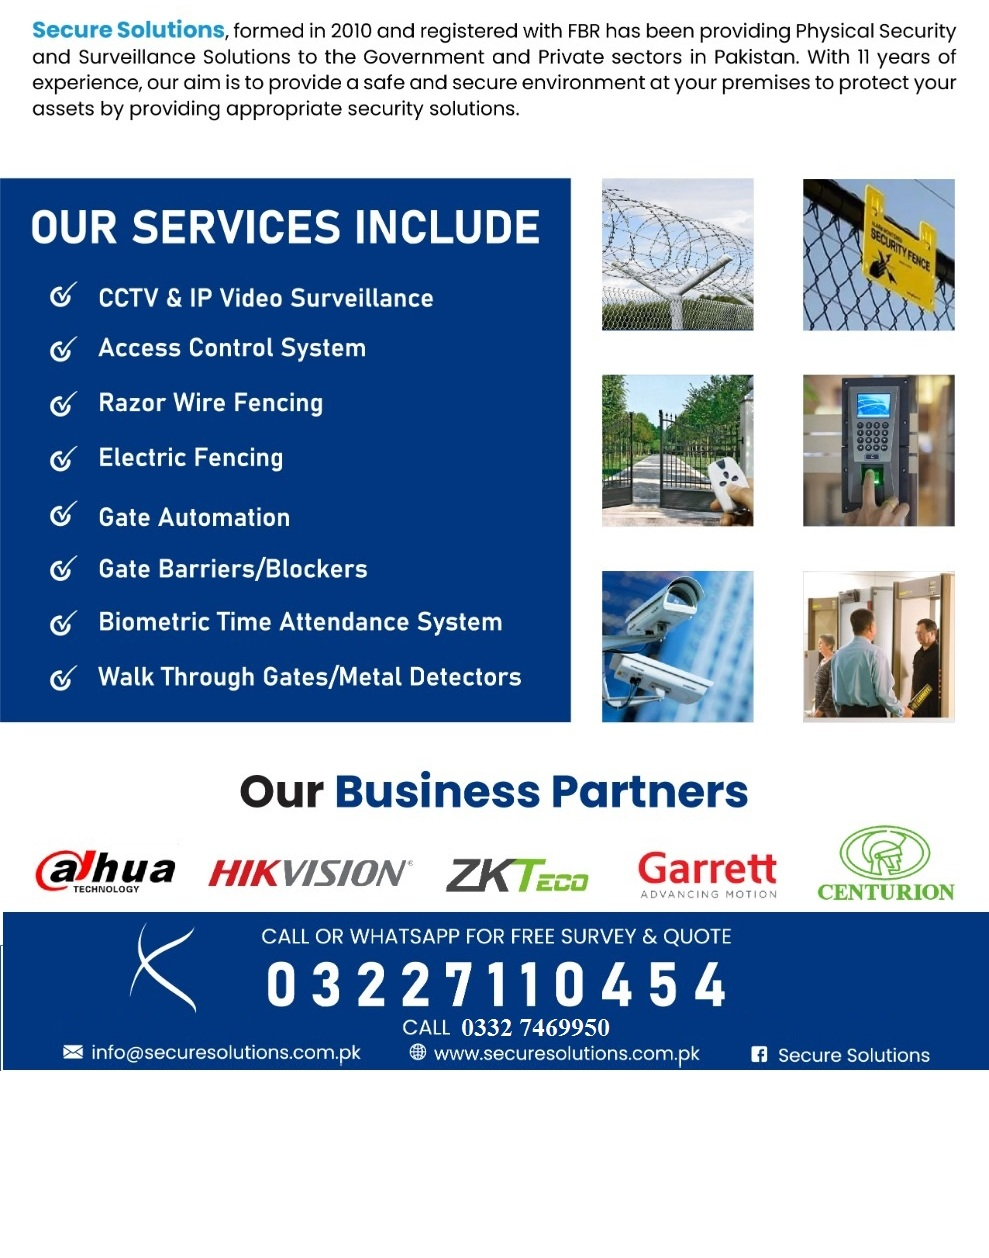 securesolutions cctv services